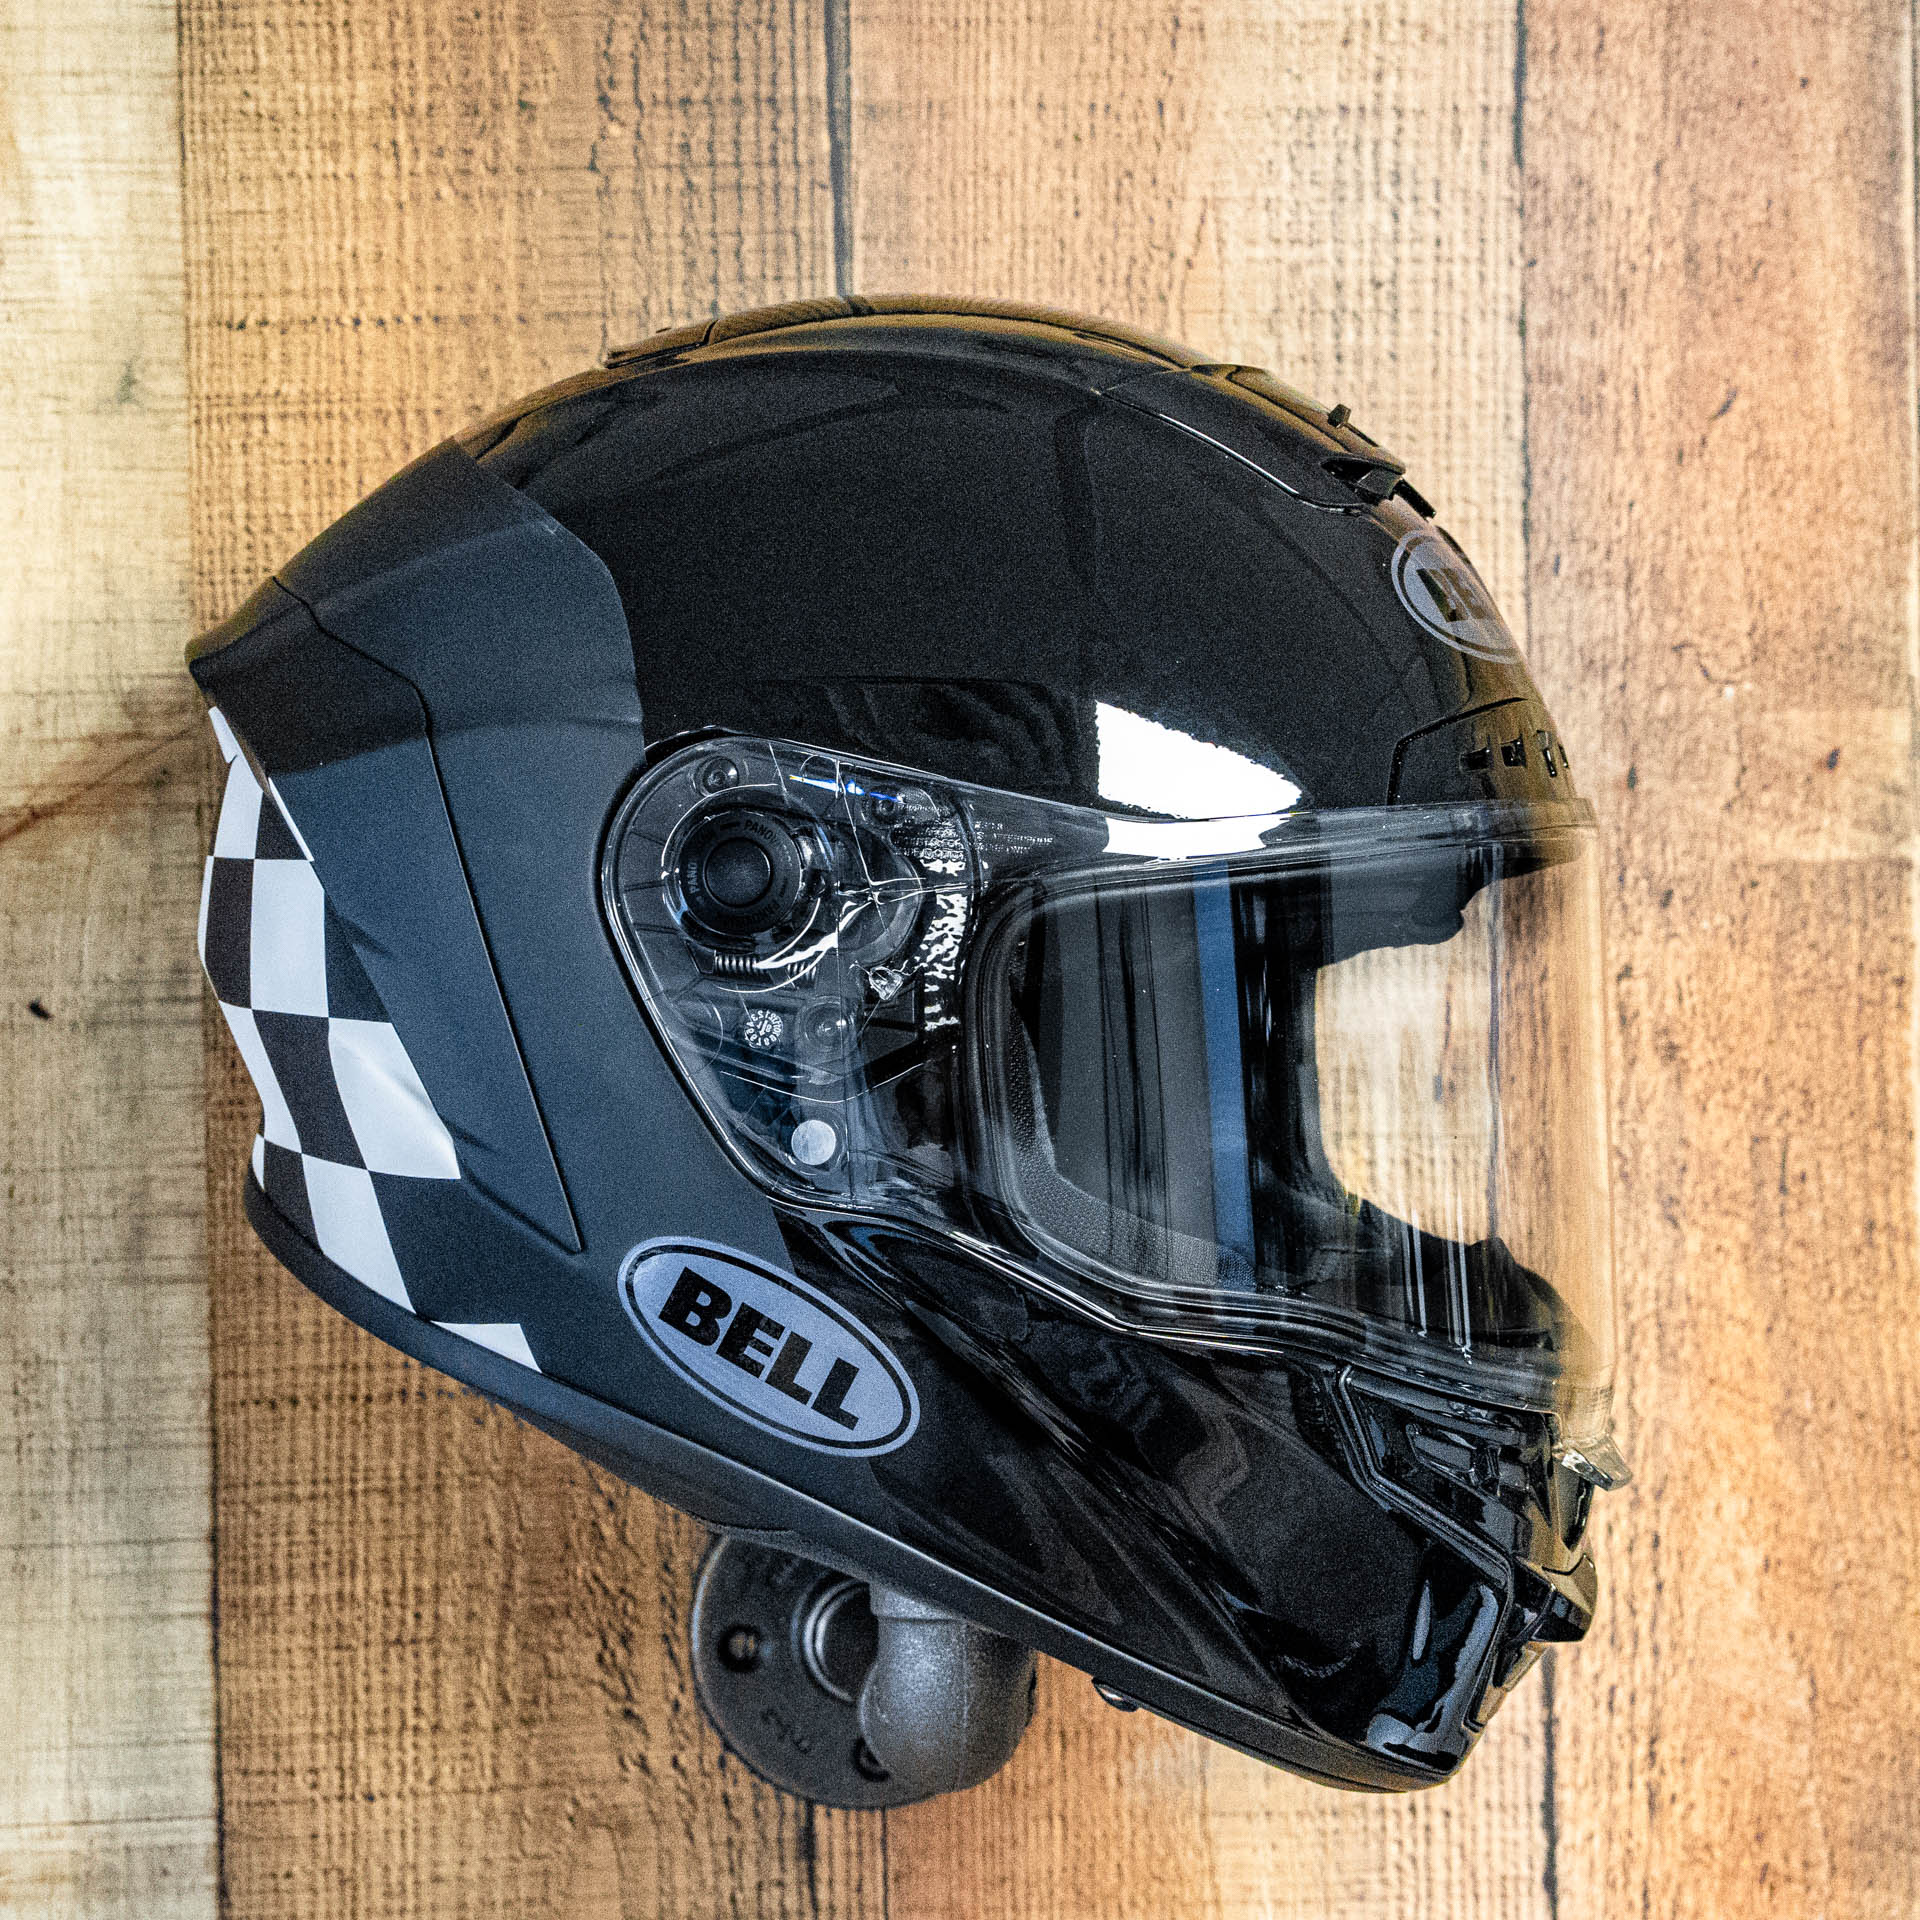 Bell Star MIPS DLX Helmet - Lux Checkers Matte/Gloss Black/White